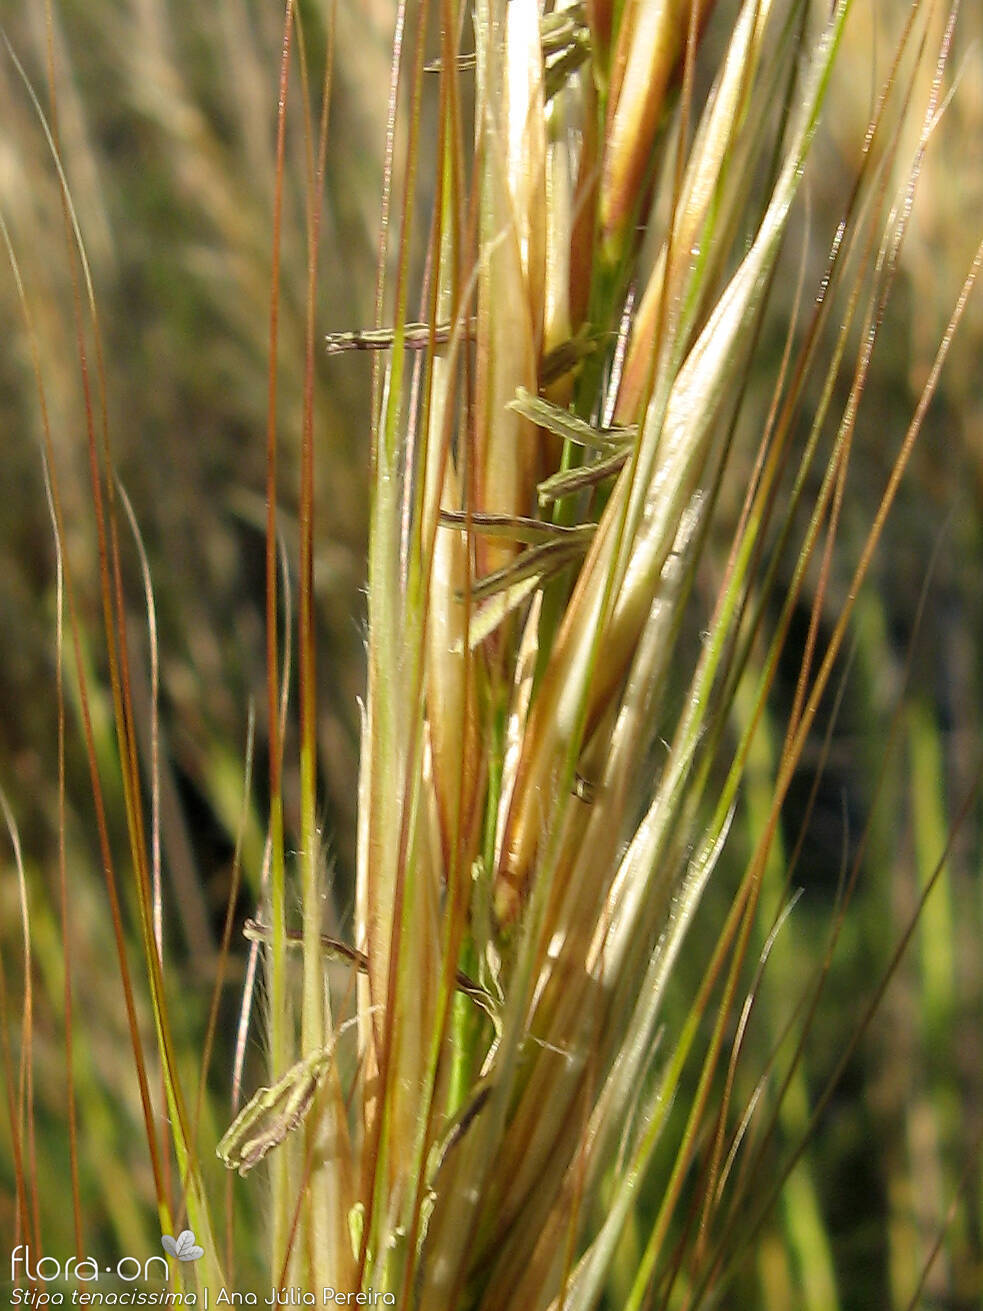 Stipa tenacissima - Flor (close-up) | Ana Júlia Pereira; CC BY-NC 4.0